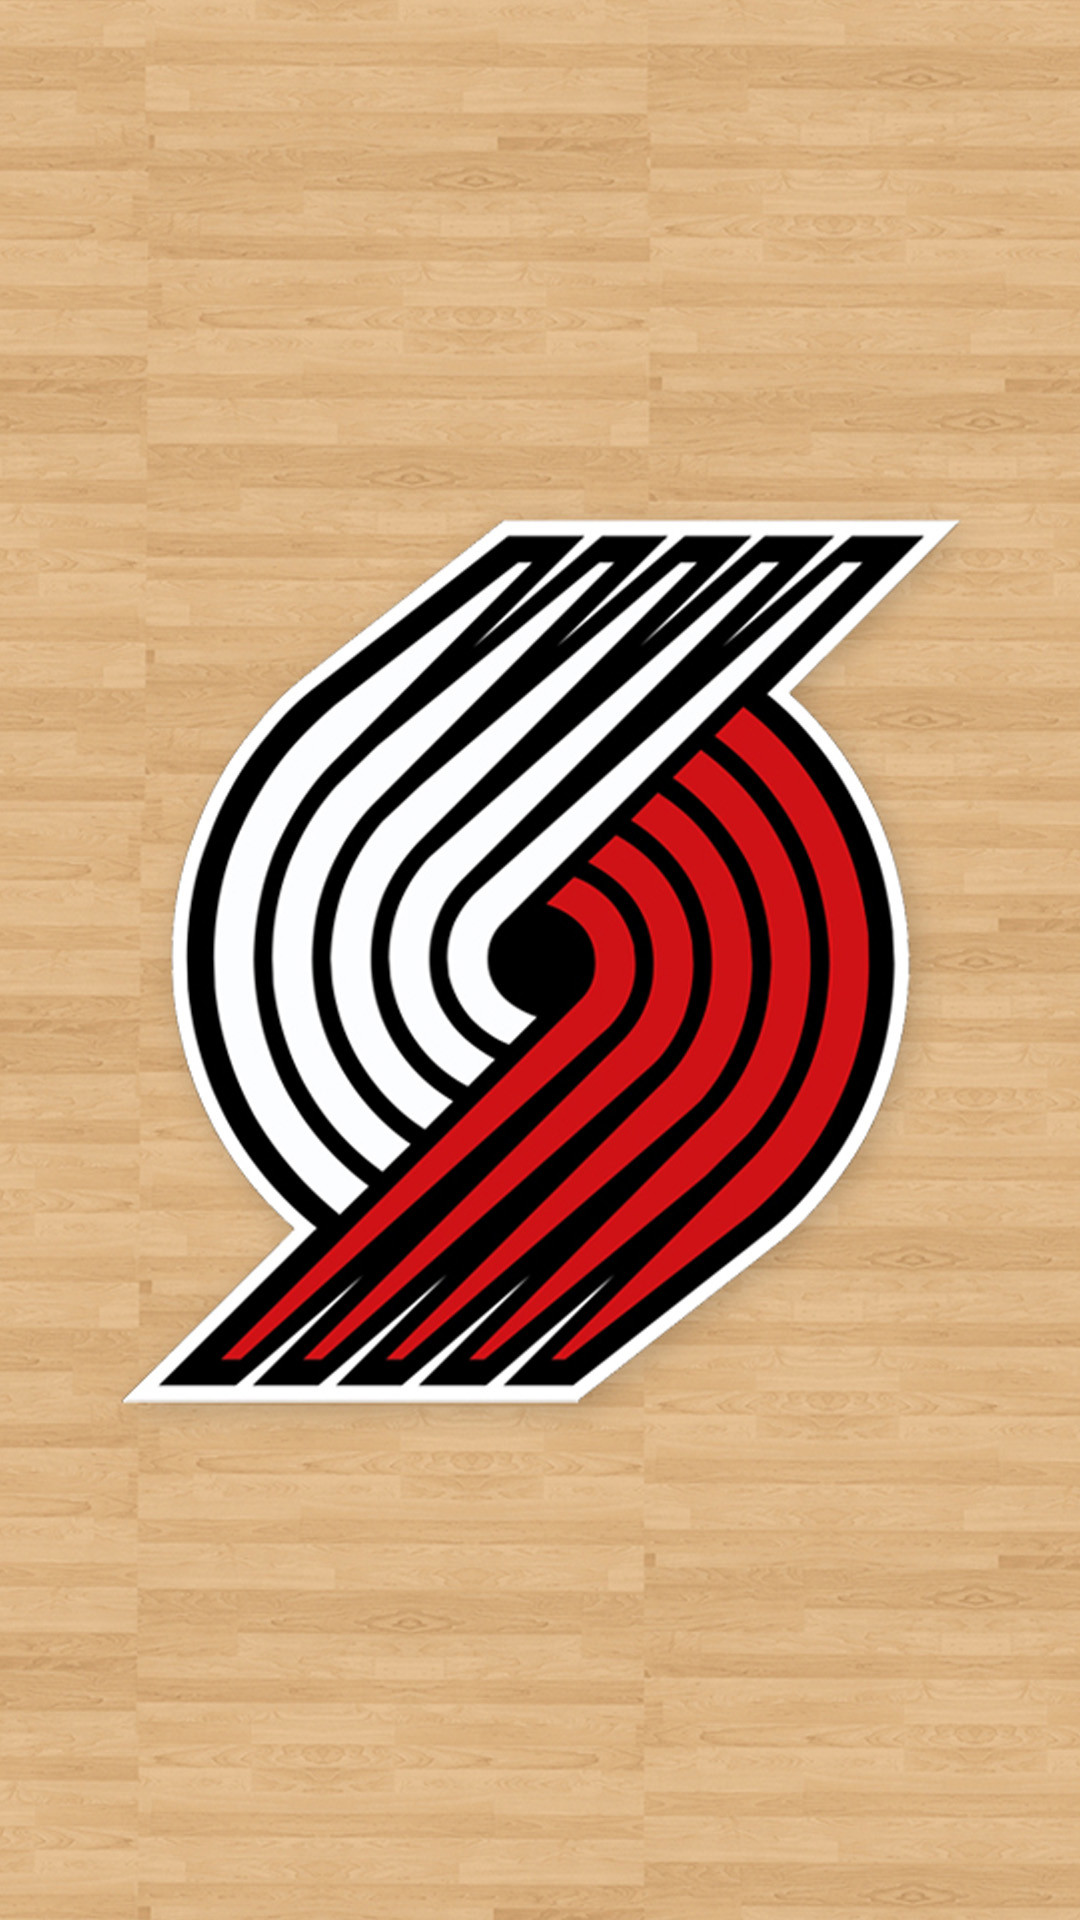 1080x1920 Portland Trail Blazers iPhone 7